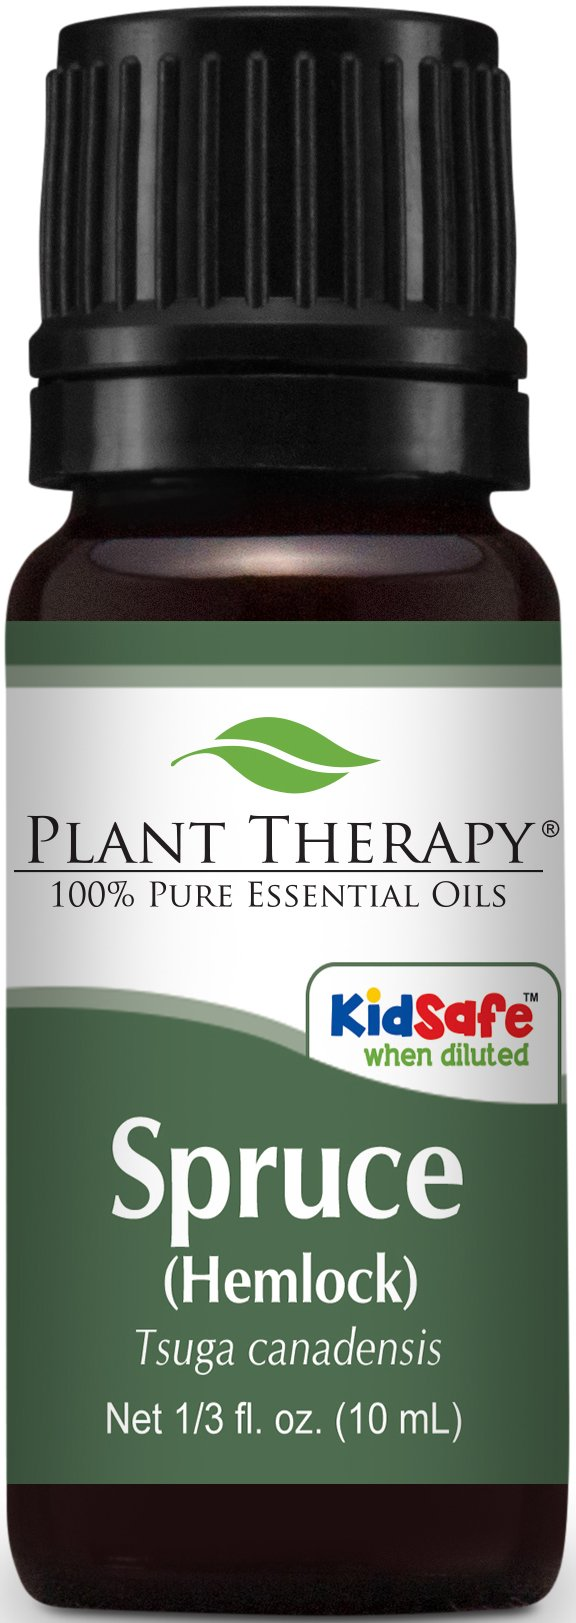 Plant Therapy Spruce (Hemlock) Essential Oil. 100% Pure, Undiluted, Therapeutic Grade. 10 ml (1/3 oz).